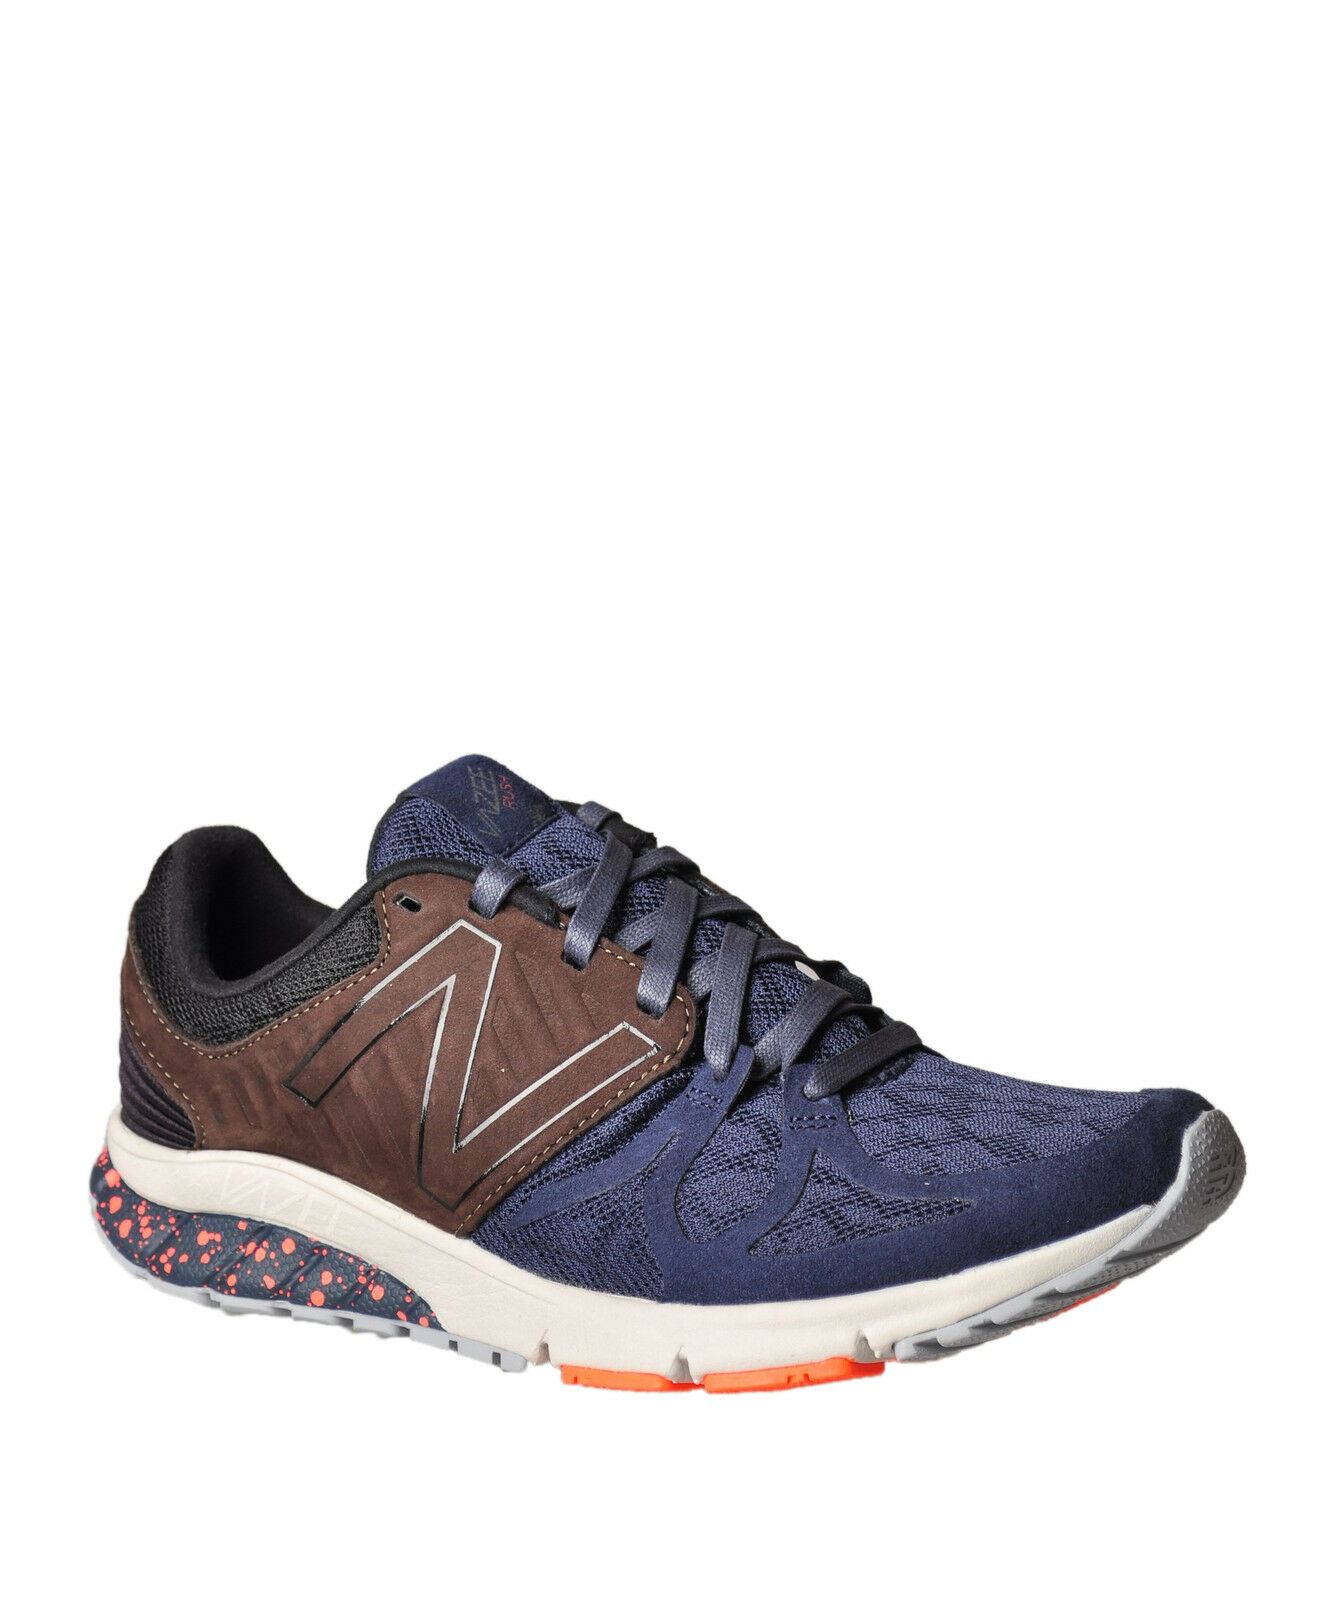 New Balance  -  Sneakers - Male - 42 - bluee - 1571126B162909